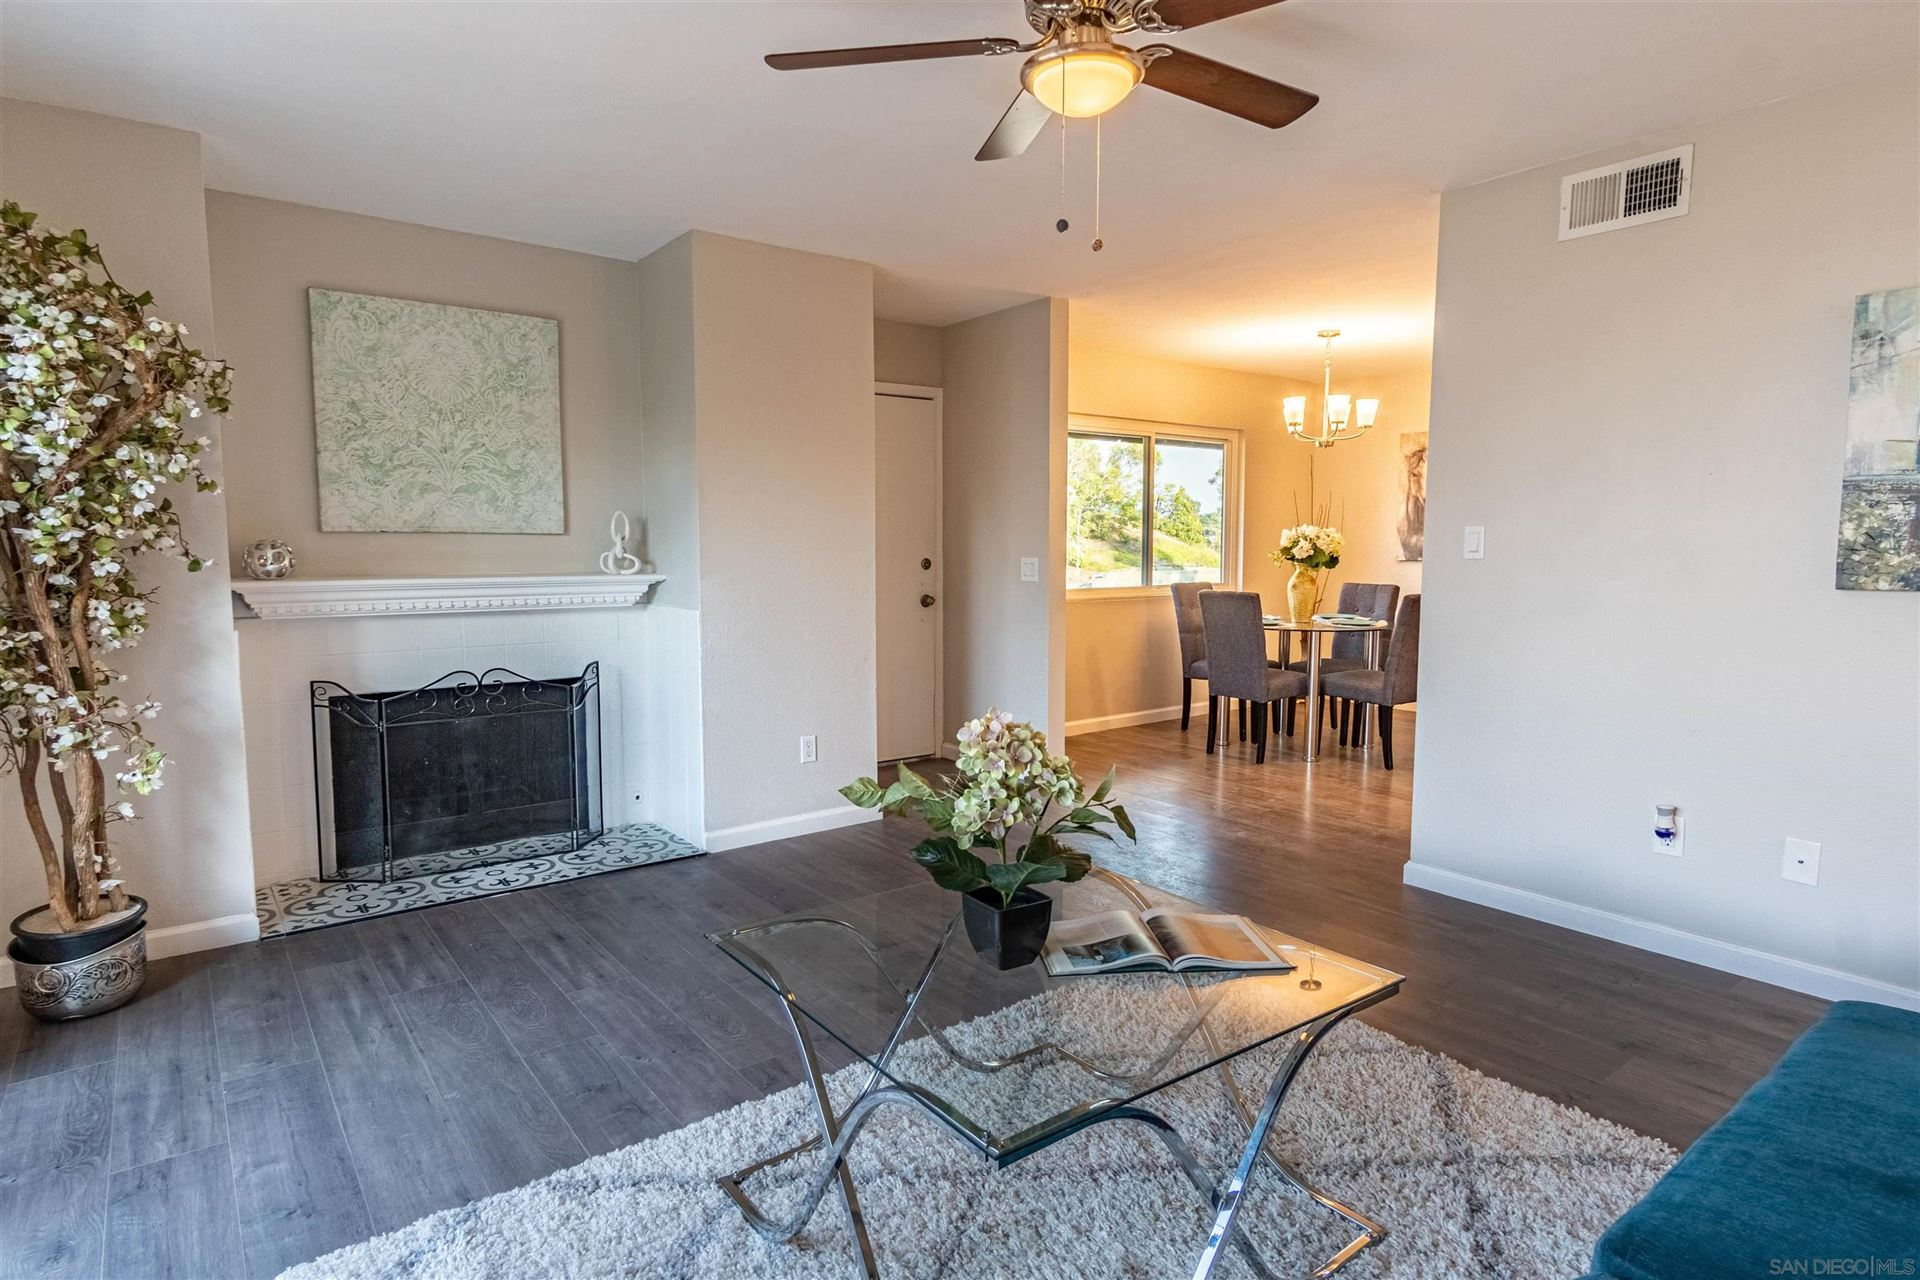 Photo of 601 R Ave #16, National City, CA 91950 (MLS # 210028012)